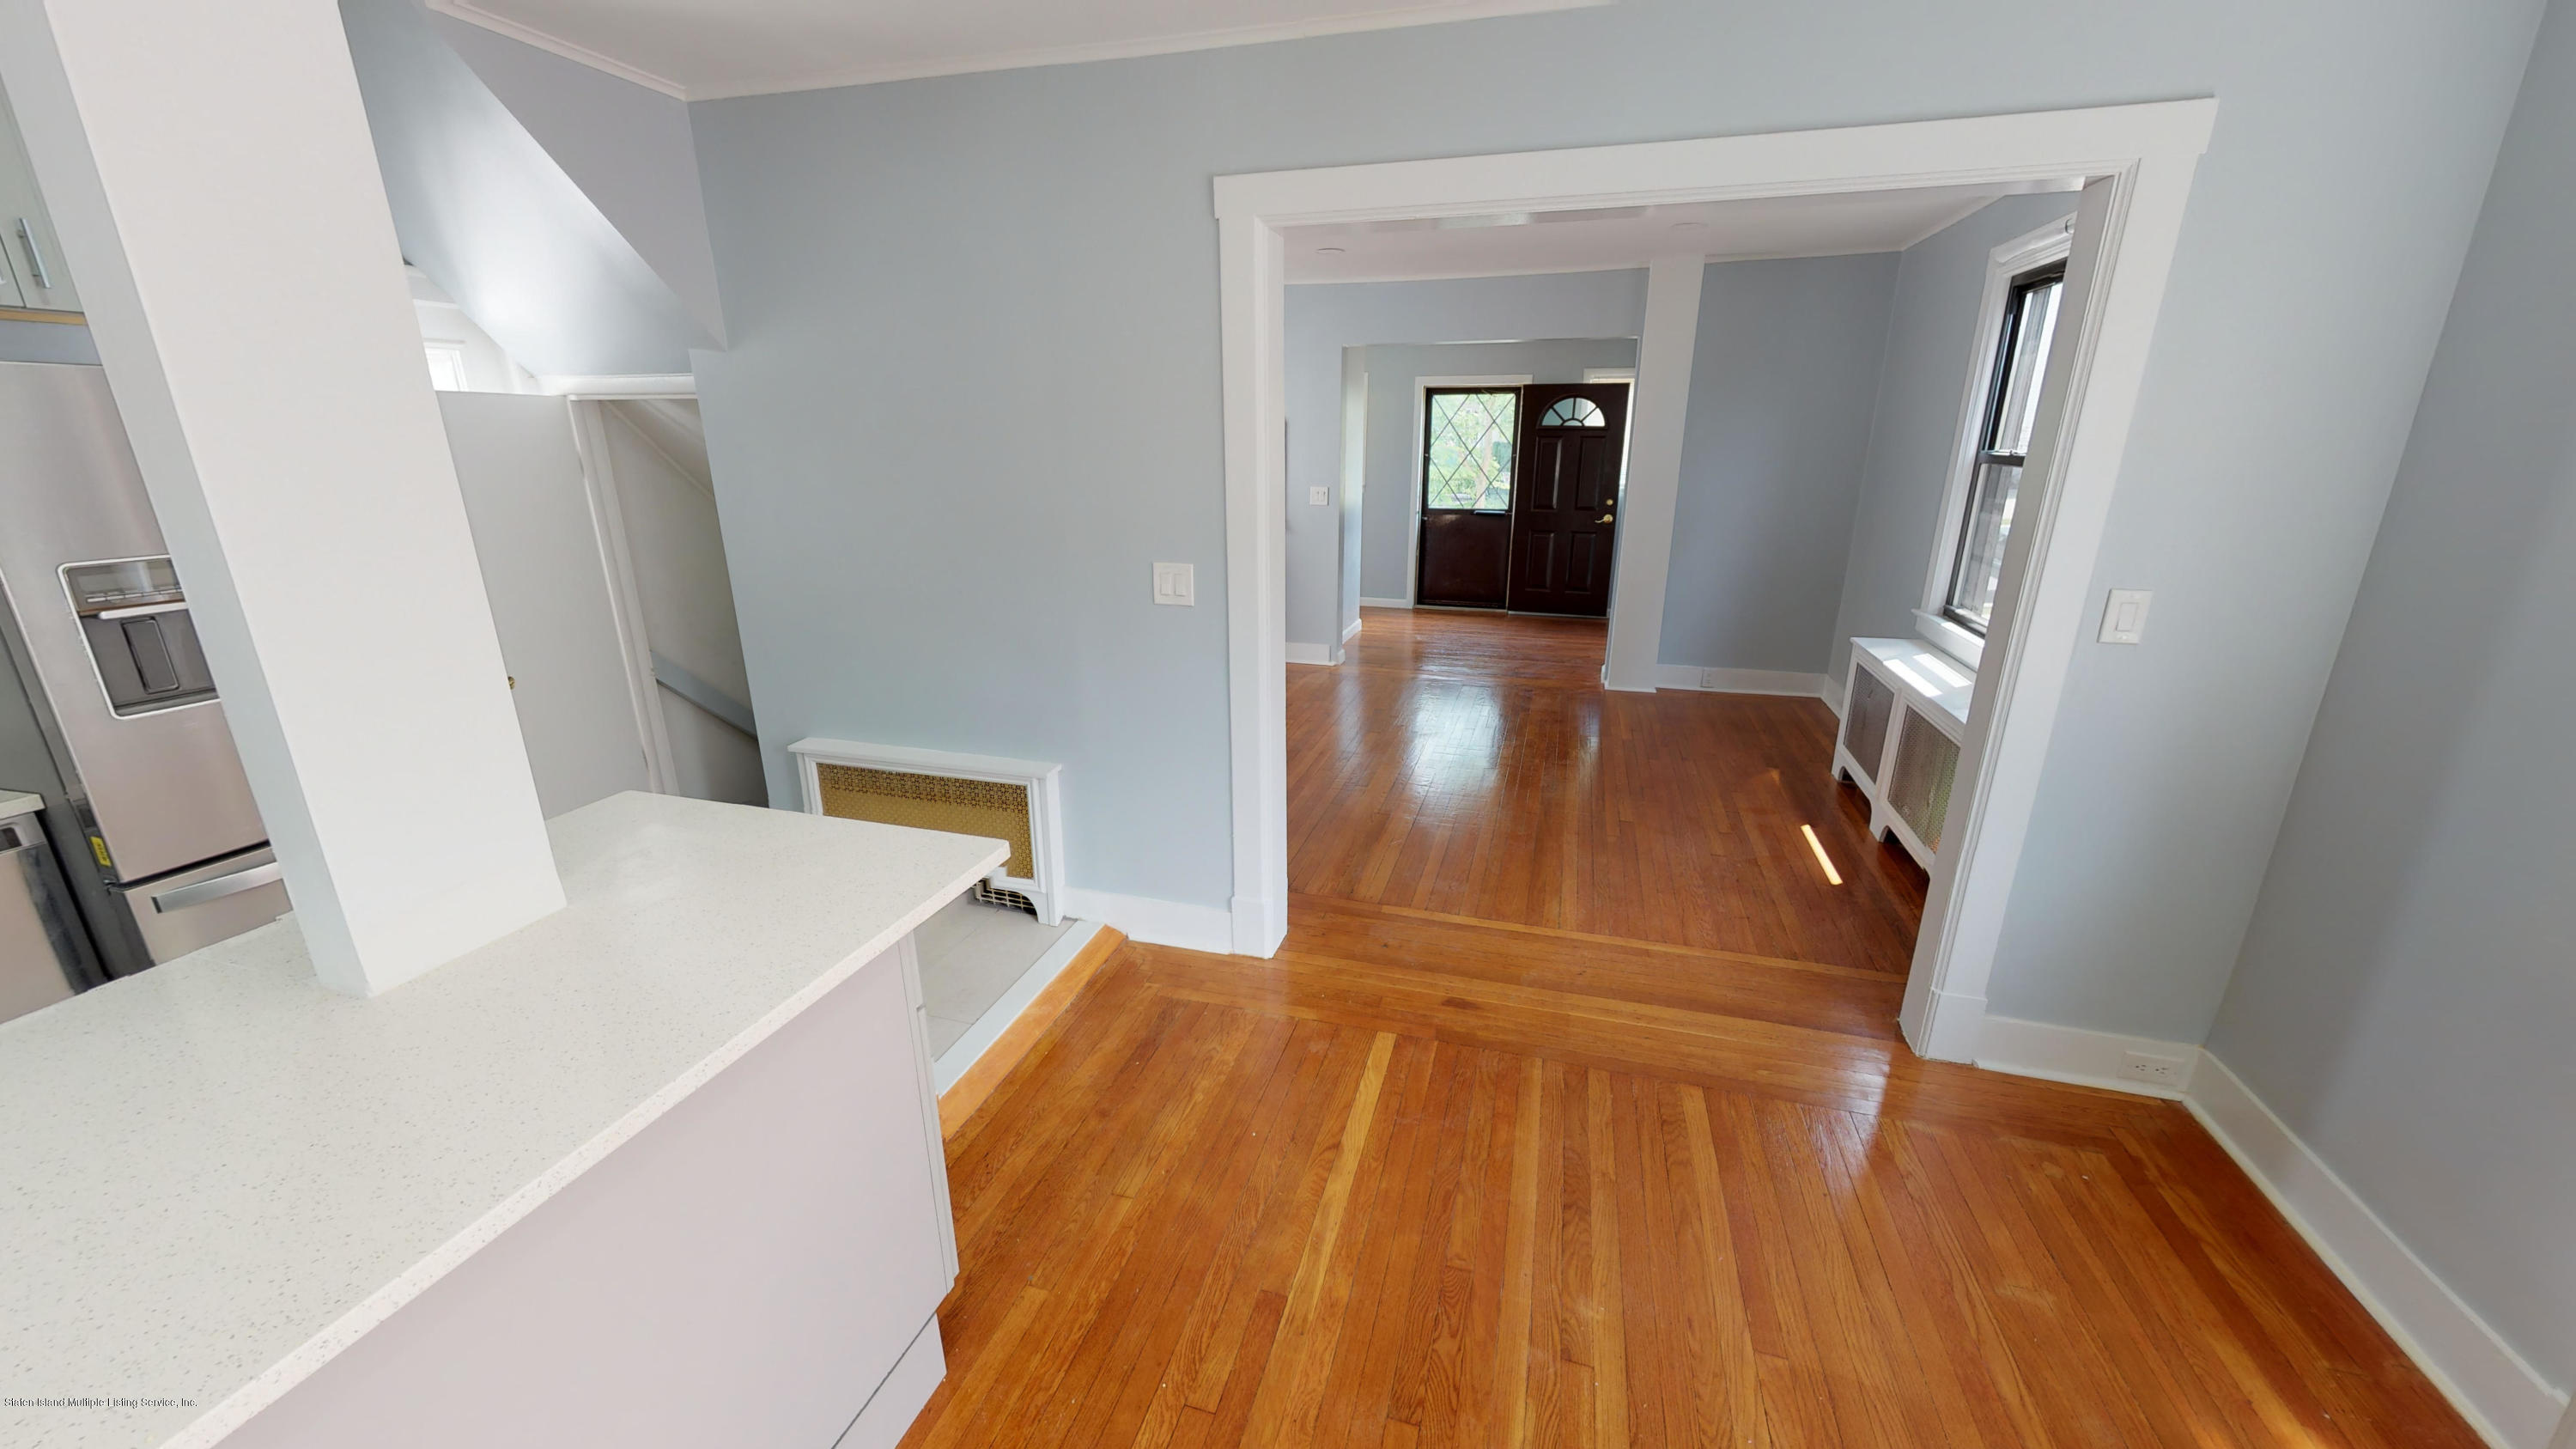 Single Family - Detached 54 Quinlan Avenue  Staten Island, NY 10314, MLS-1129378-9